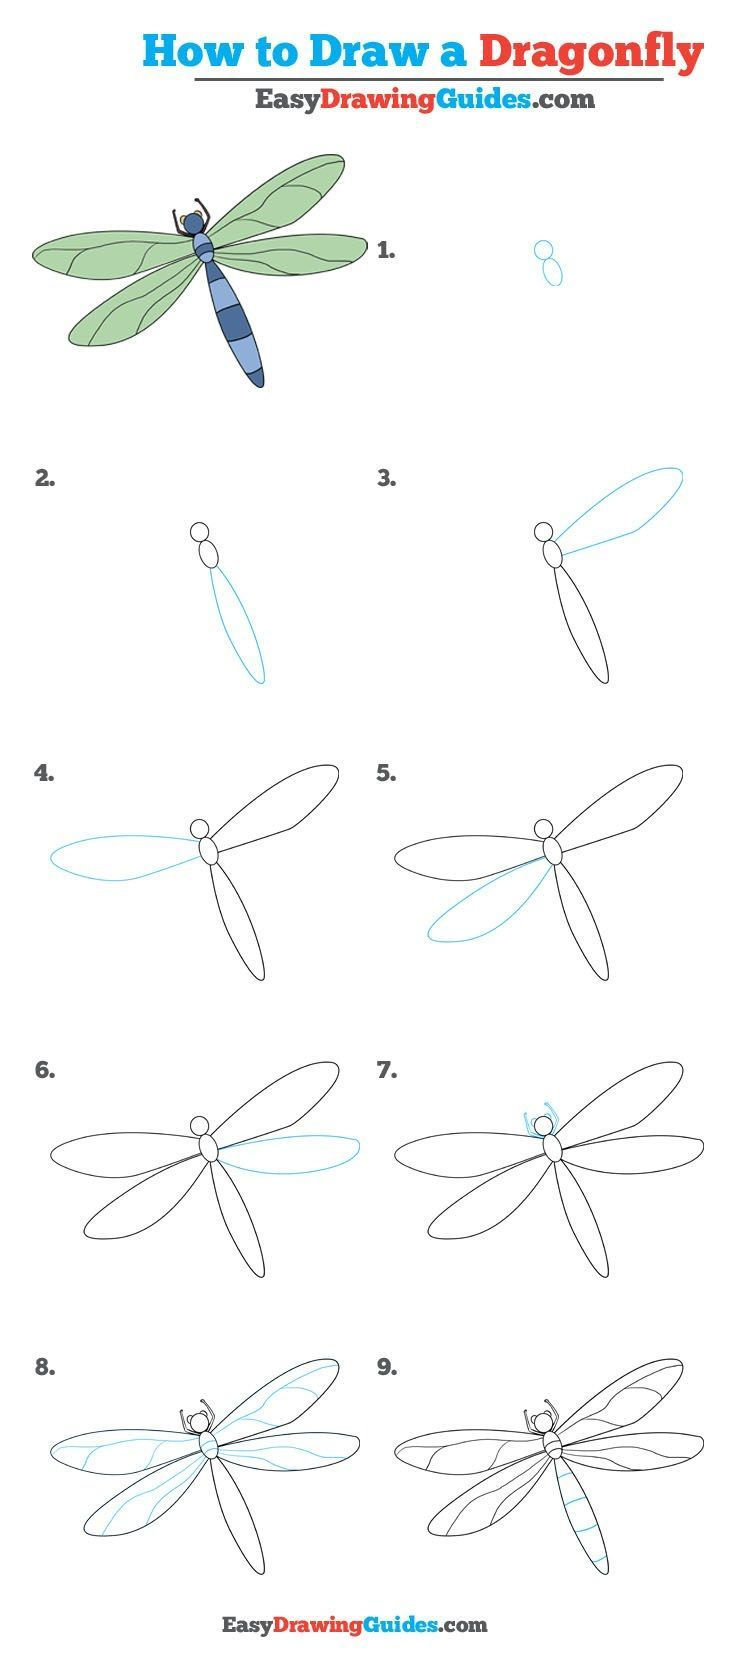 How to Draw a Dragonfly - Really Easy Drawing Tutorial